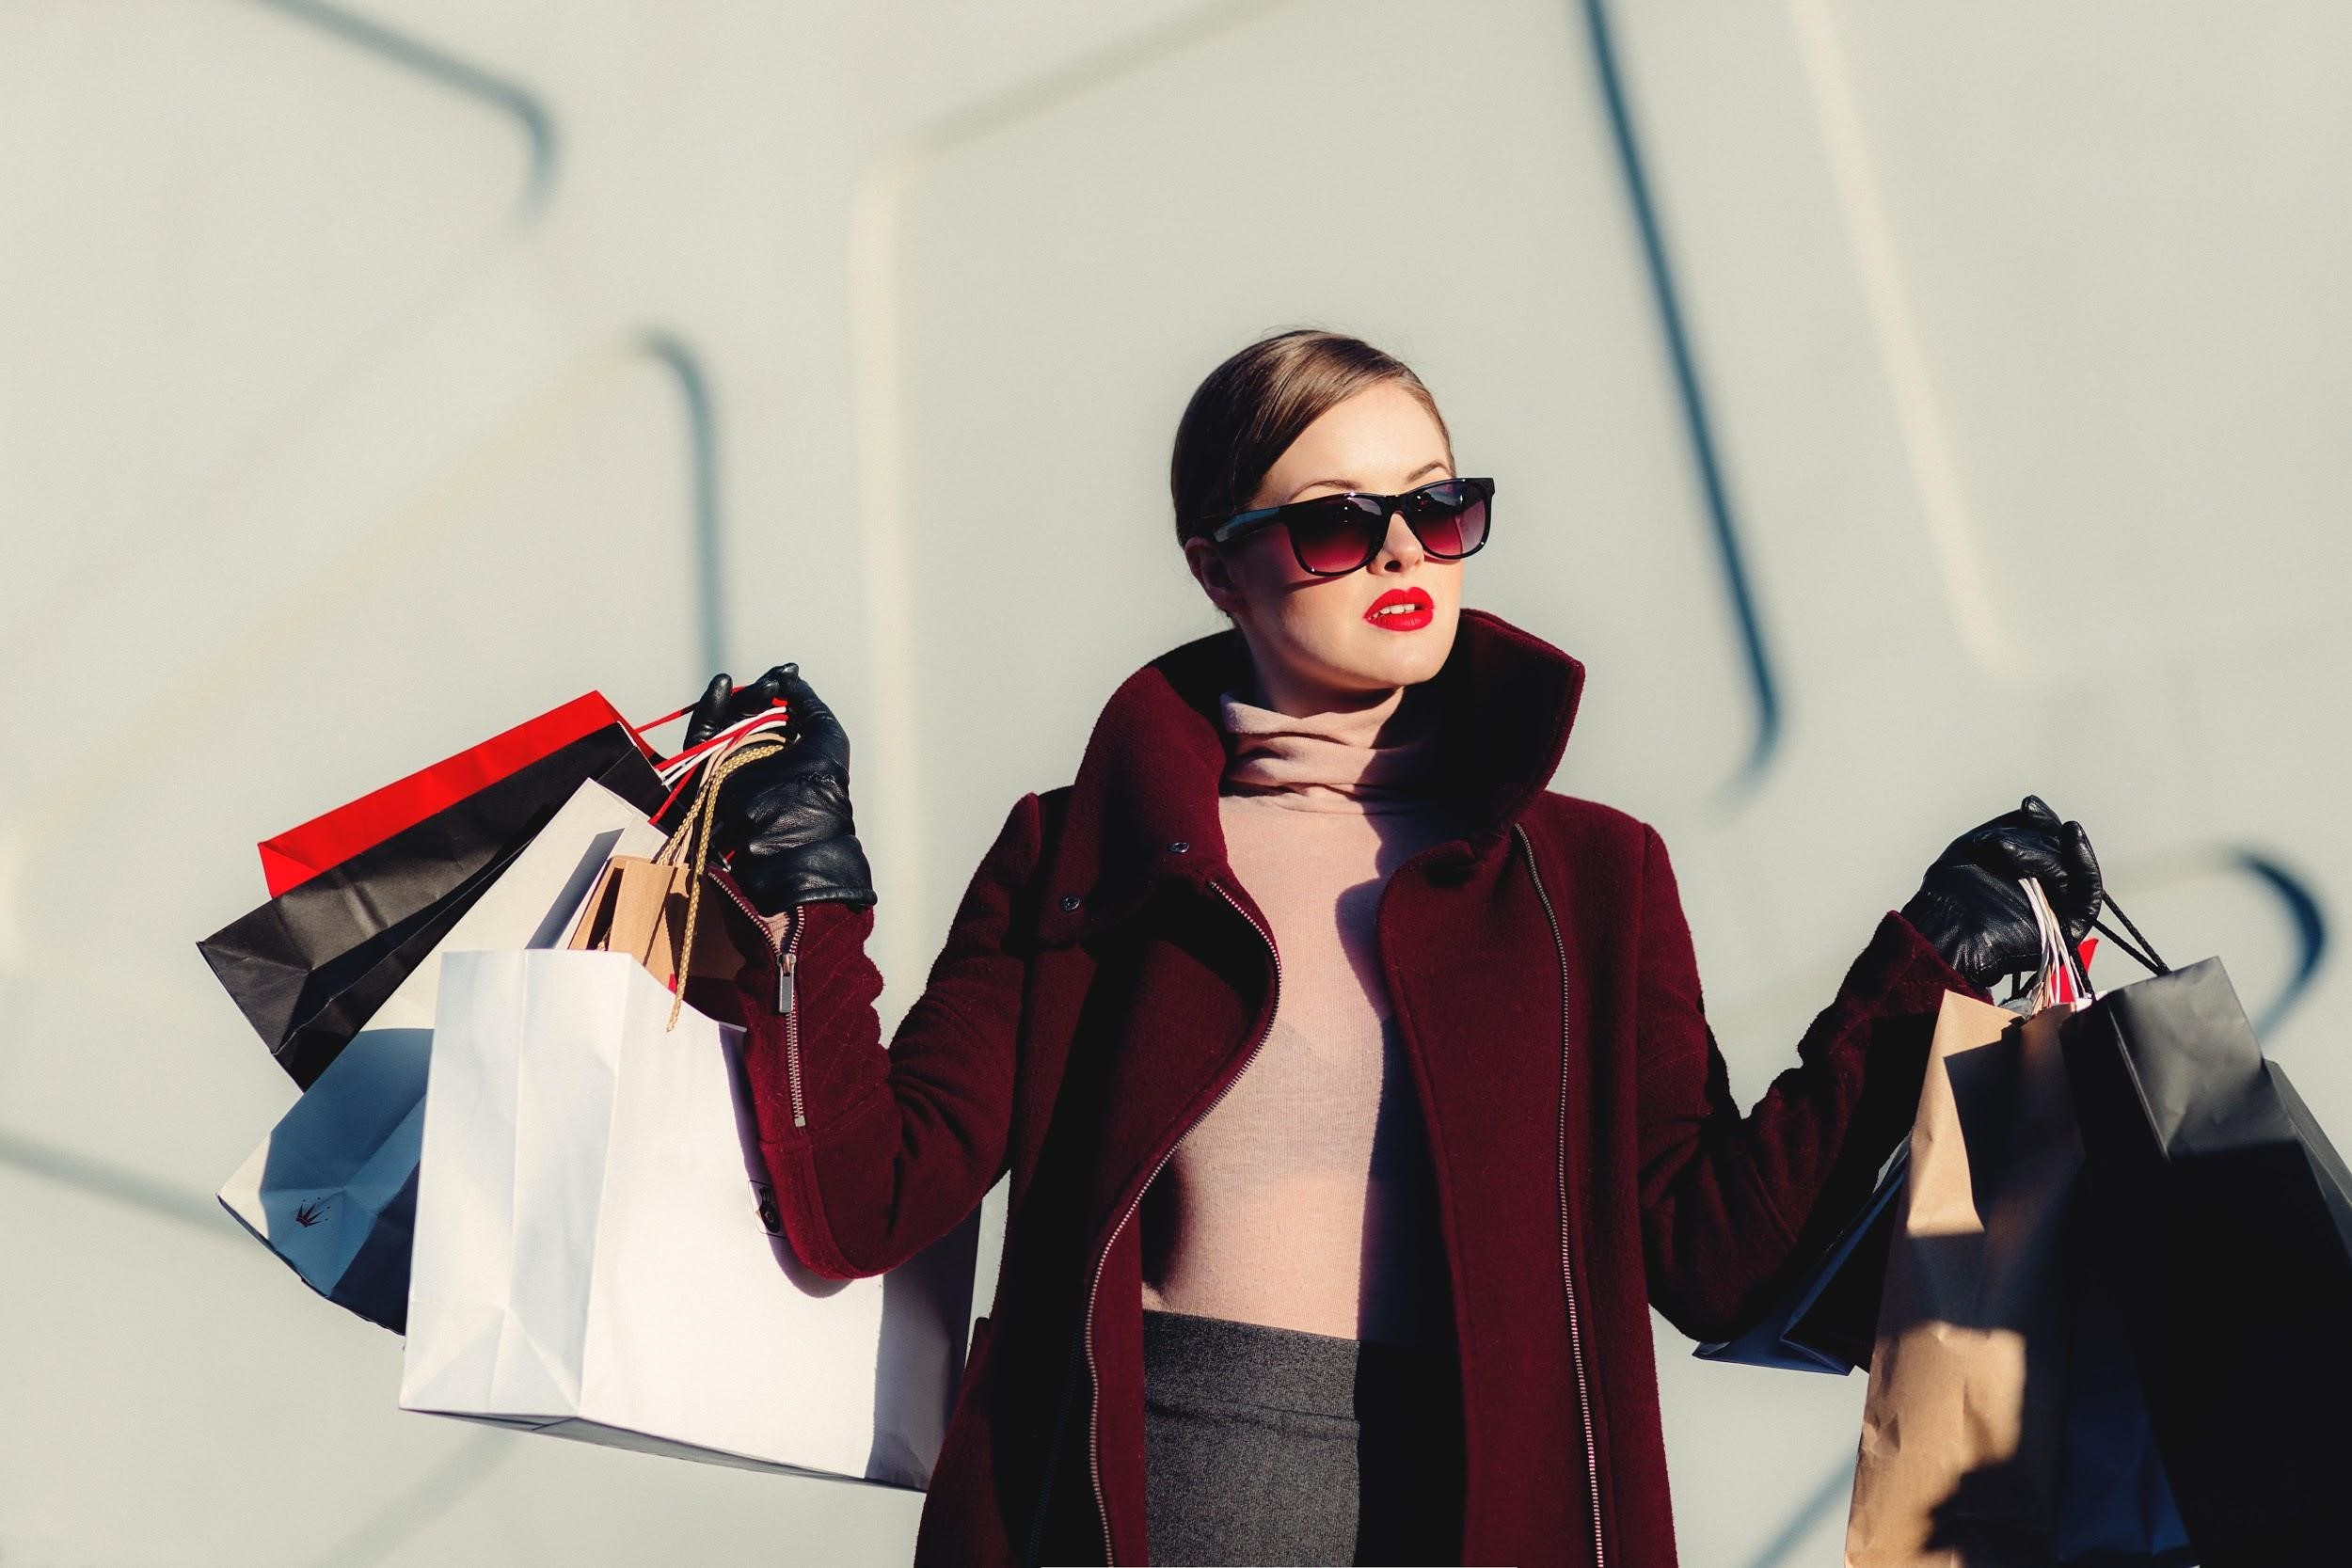 Save money on your favorite clothes with these great apps!